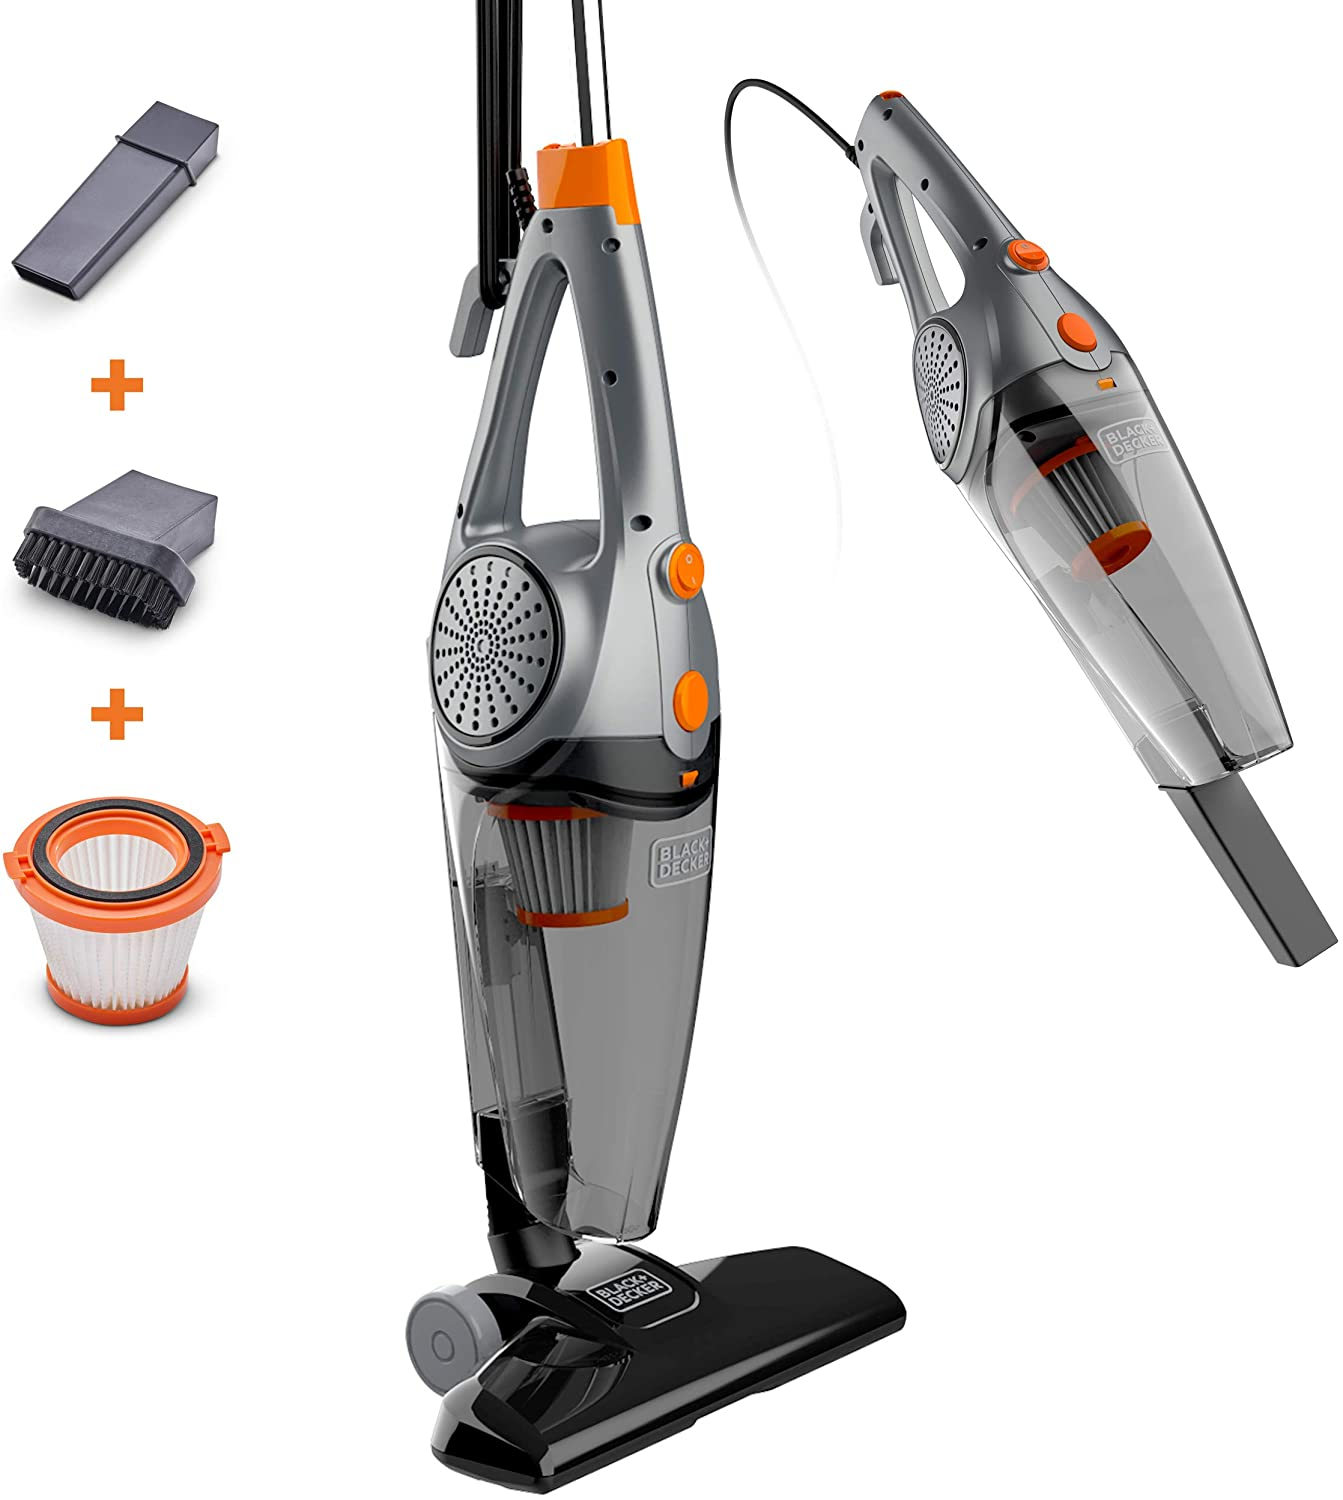 BLACK+DECKER 3-In-1 Upright Stick Cleaner New color wit Vacuum Handheld Detroit Mall